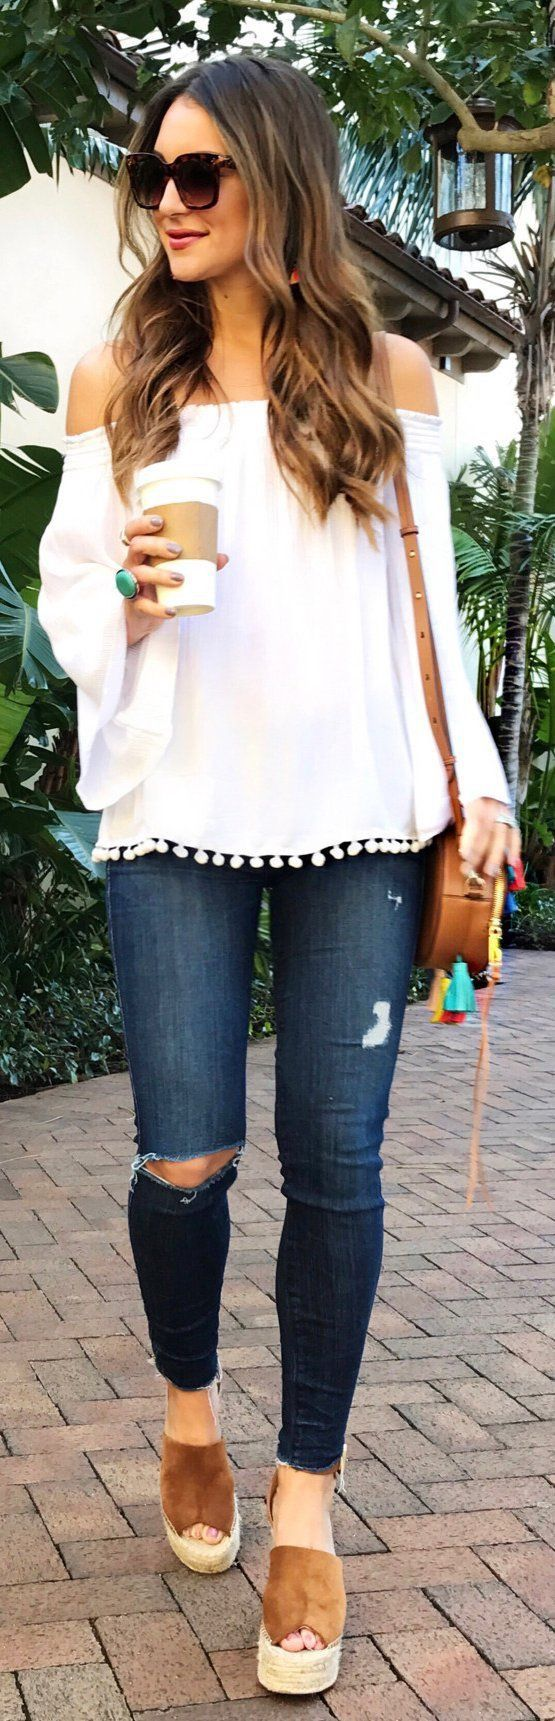 This outfit is cute. I wouldn't want a complete off the shoulder top, but I love the cold shoulder tops.